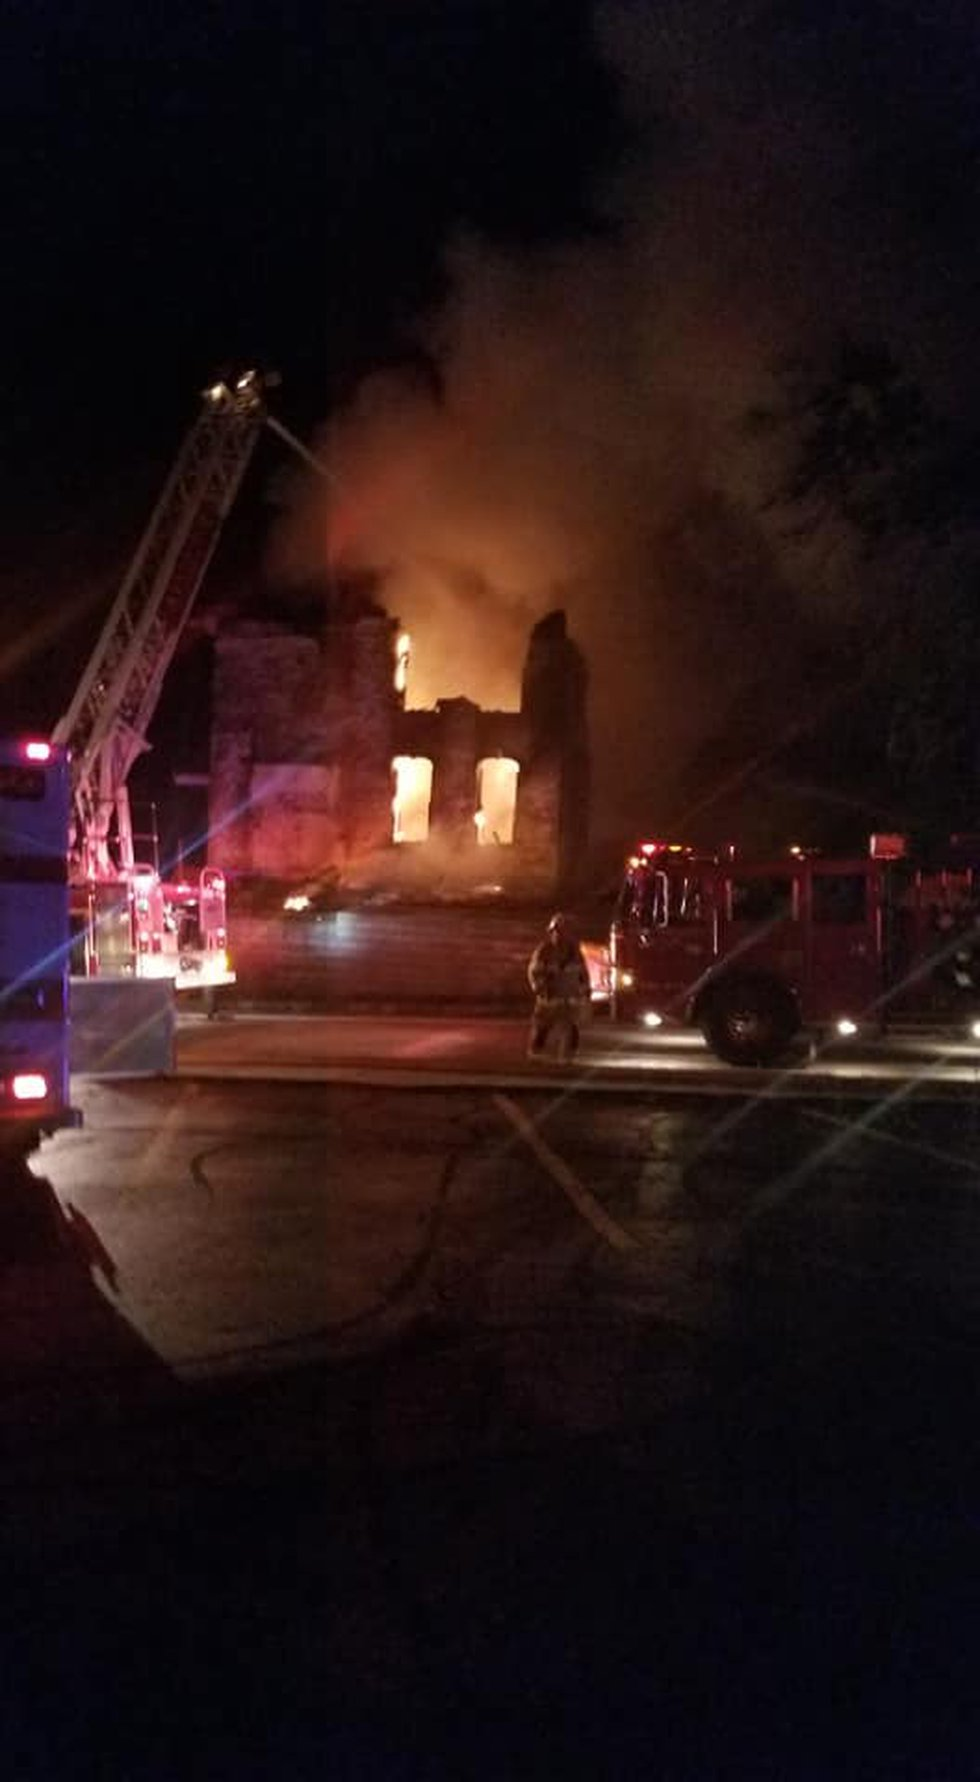 Alliance house fire that hurt firefighter suspected to be caused by arson